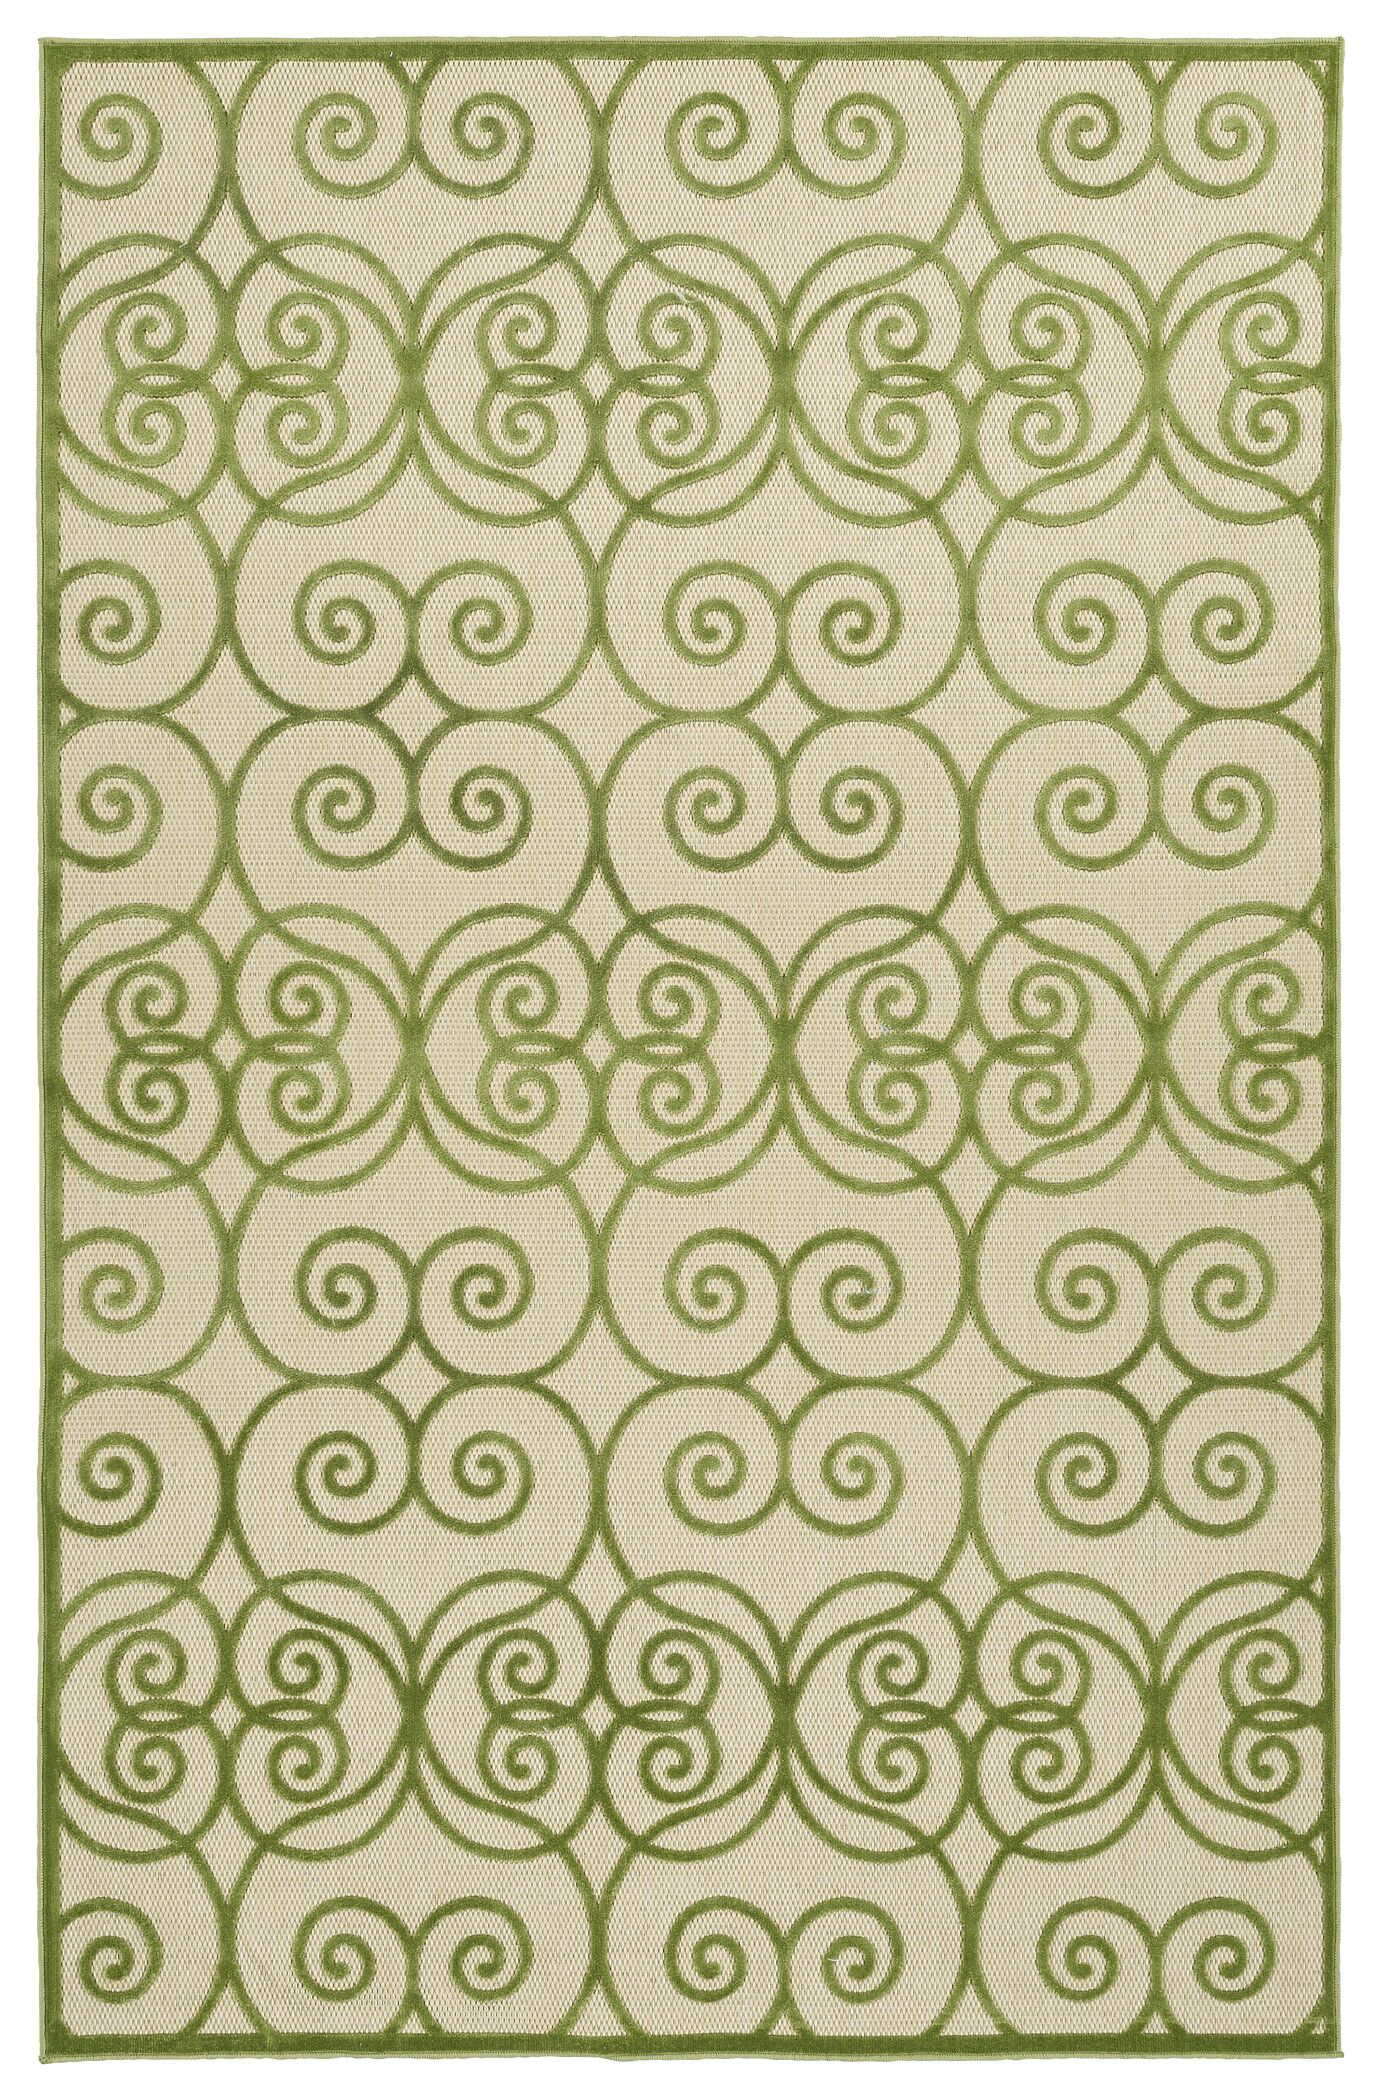 Covedale Green/Cream Indoor/Outdoor Area Rug Rug Size: Rectangle 5' x 7'6